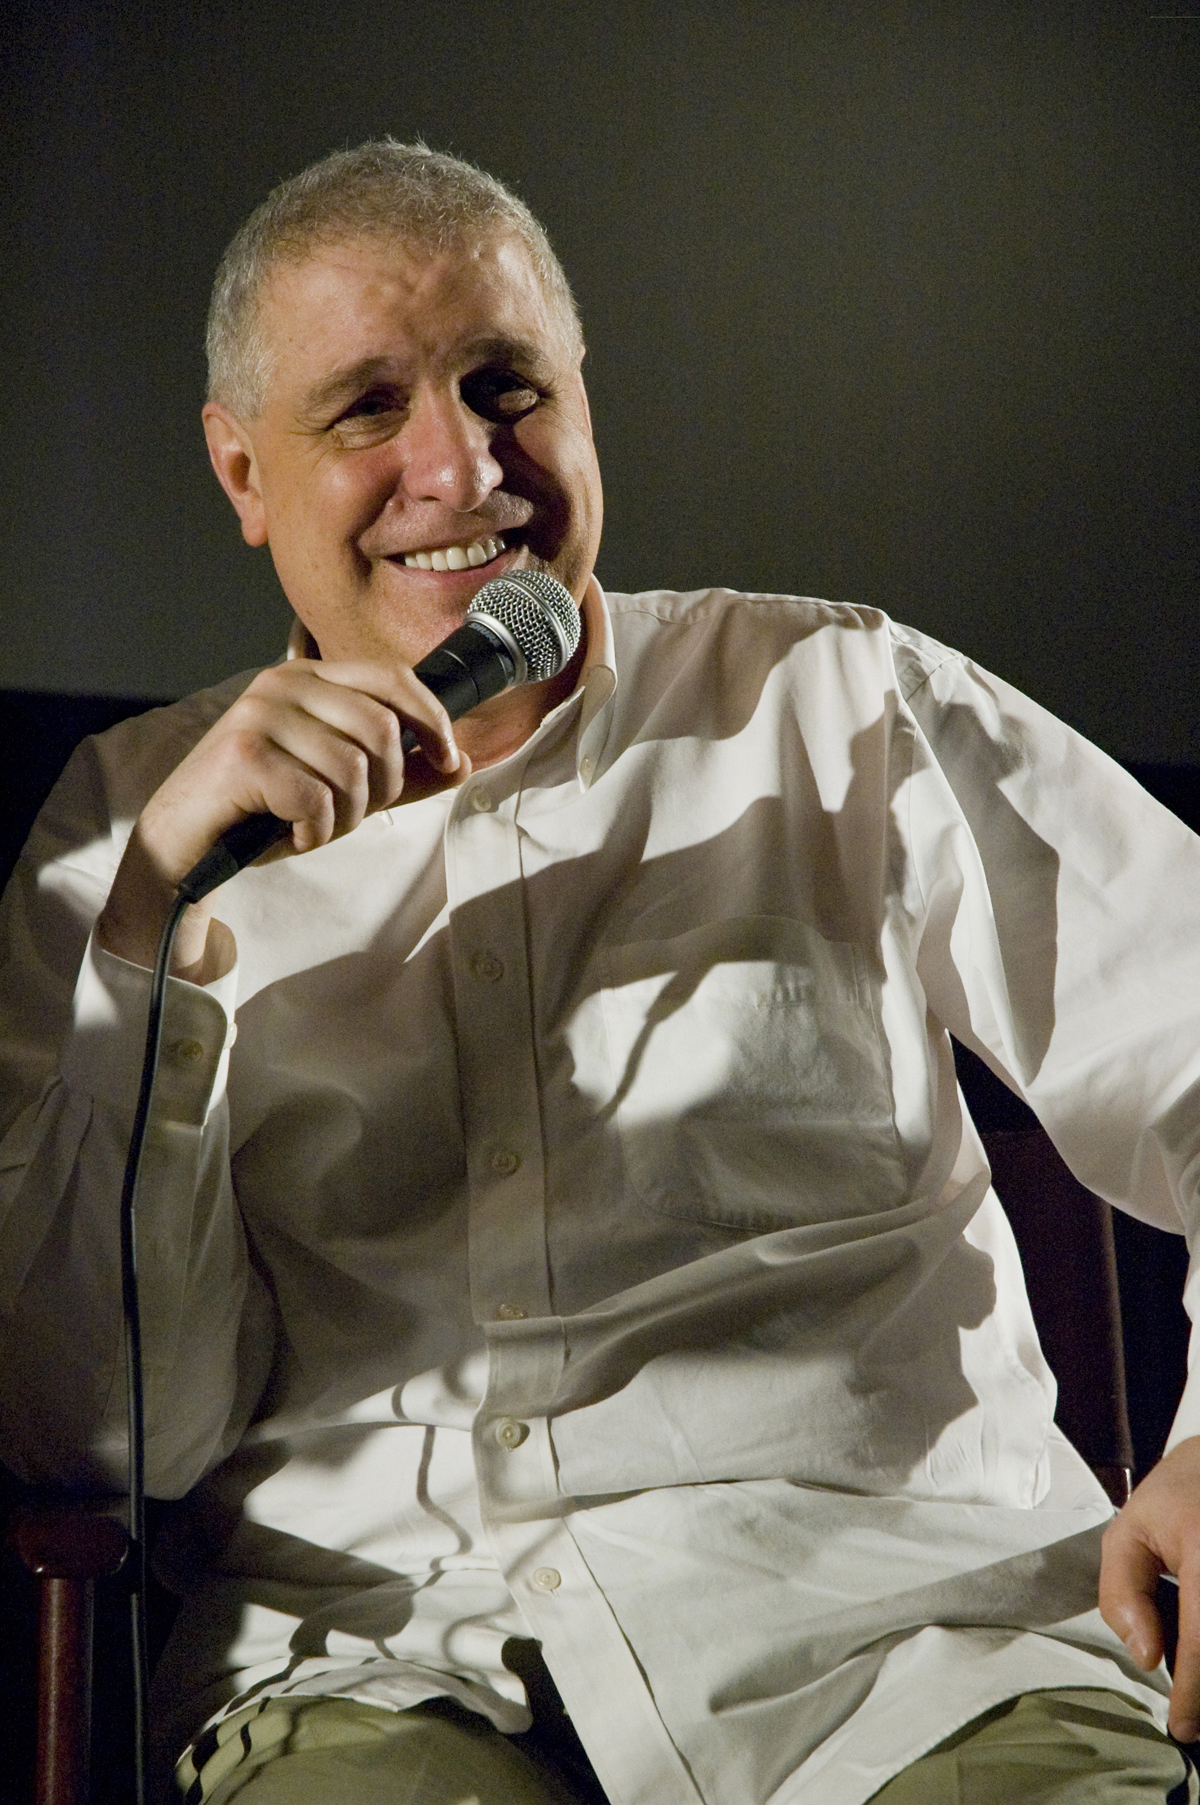 The 70-year old son of father (?) and mother(?) Errol Morris in 2018 photo. Errol Morris earned a  million dollar salary - leaving the net worth at 10 million in 2018